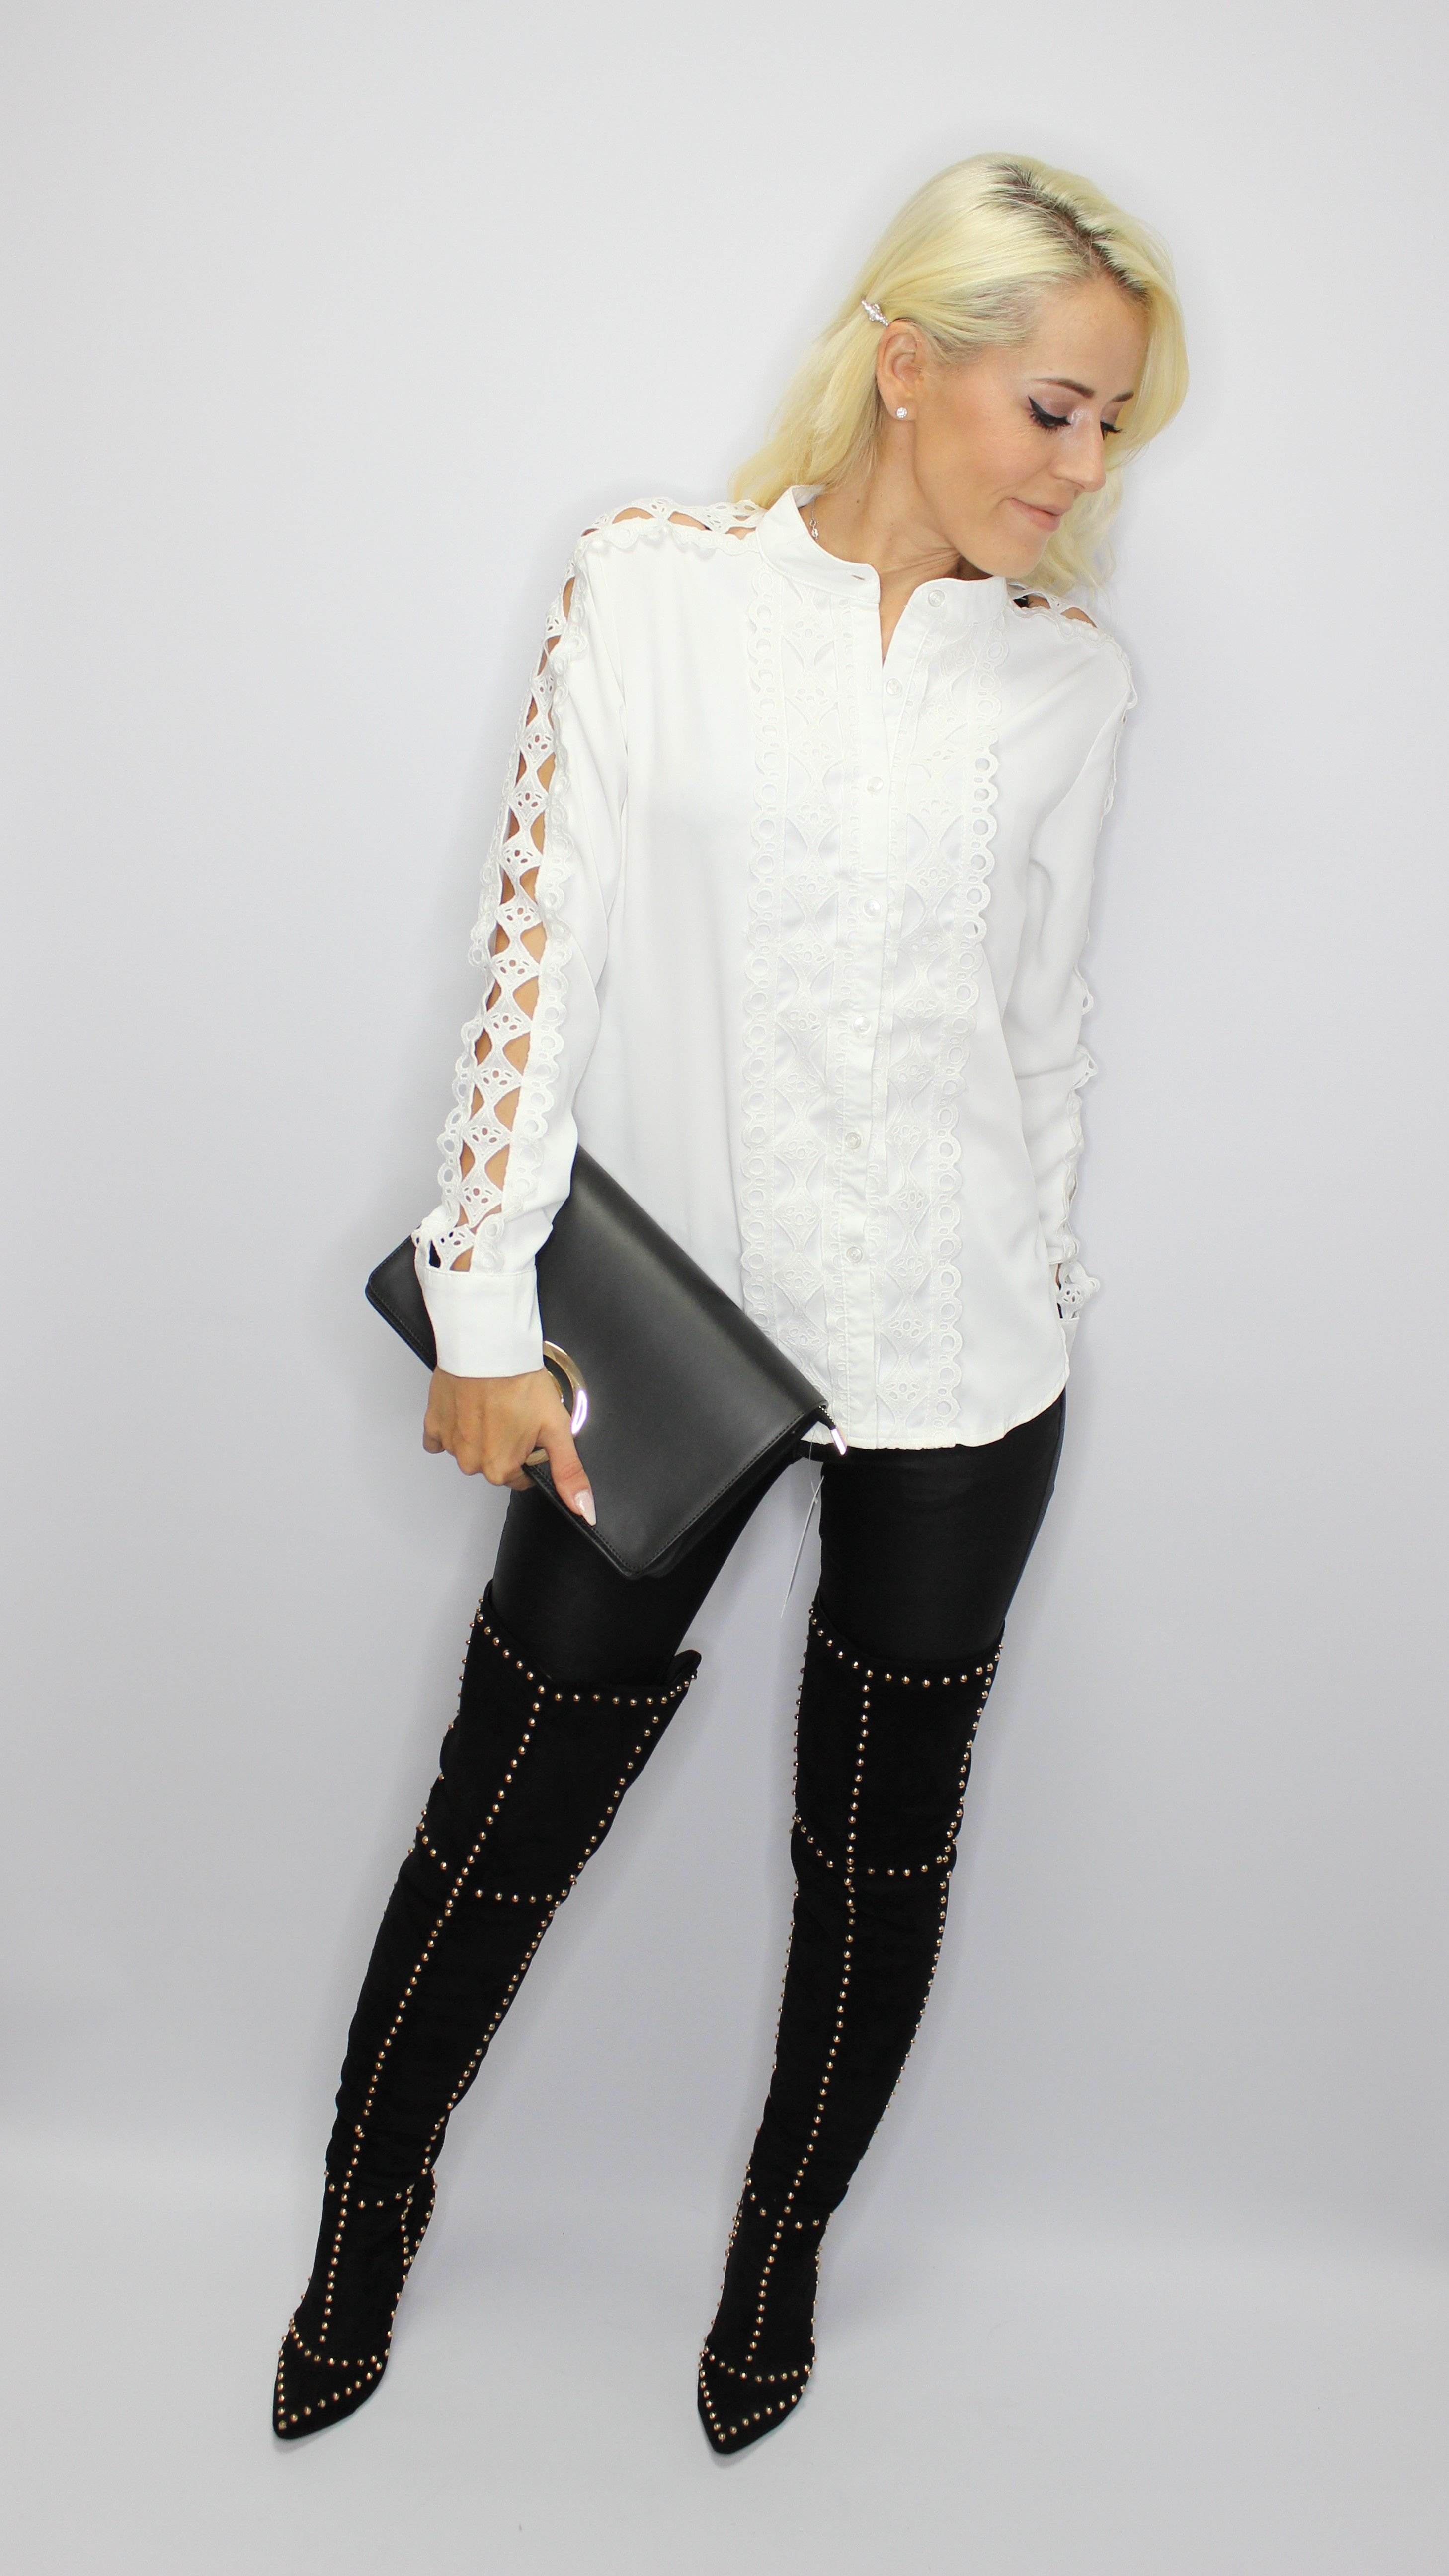 White Shirt With Lace Trim